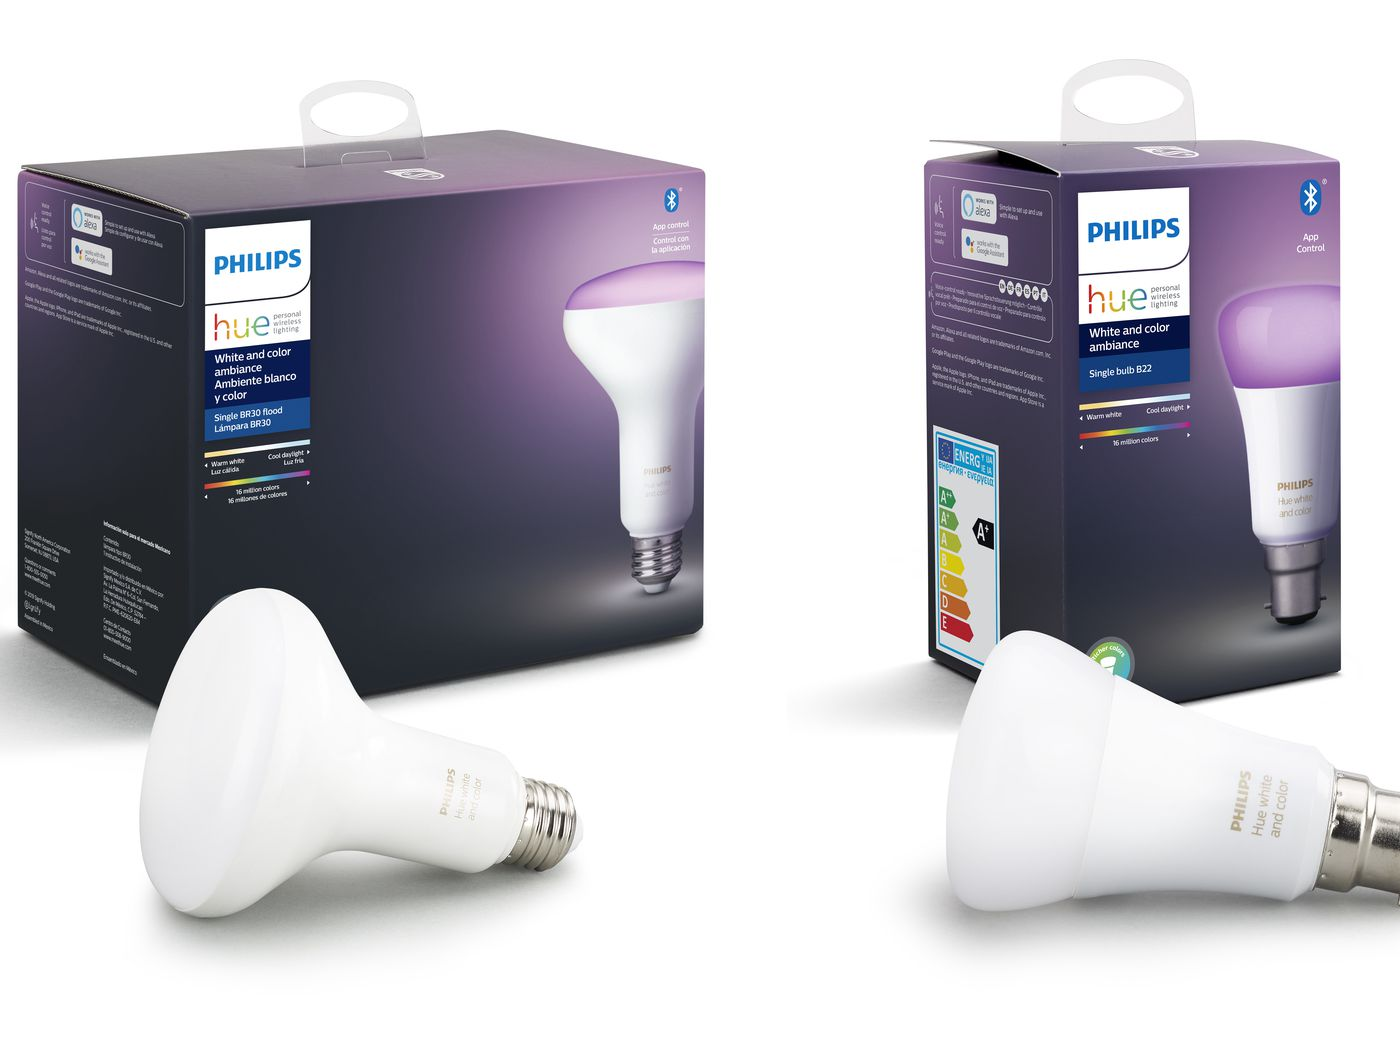 Philips Hue bulbs now come with Bluetooth, so you don't need a hub